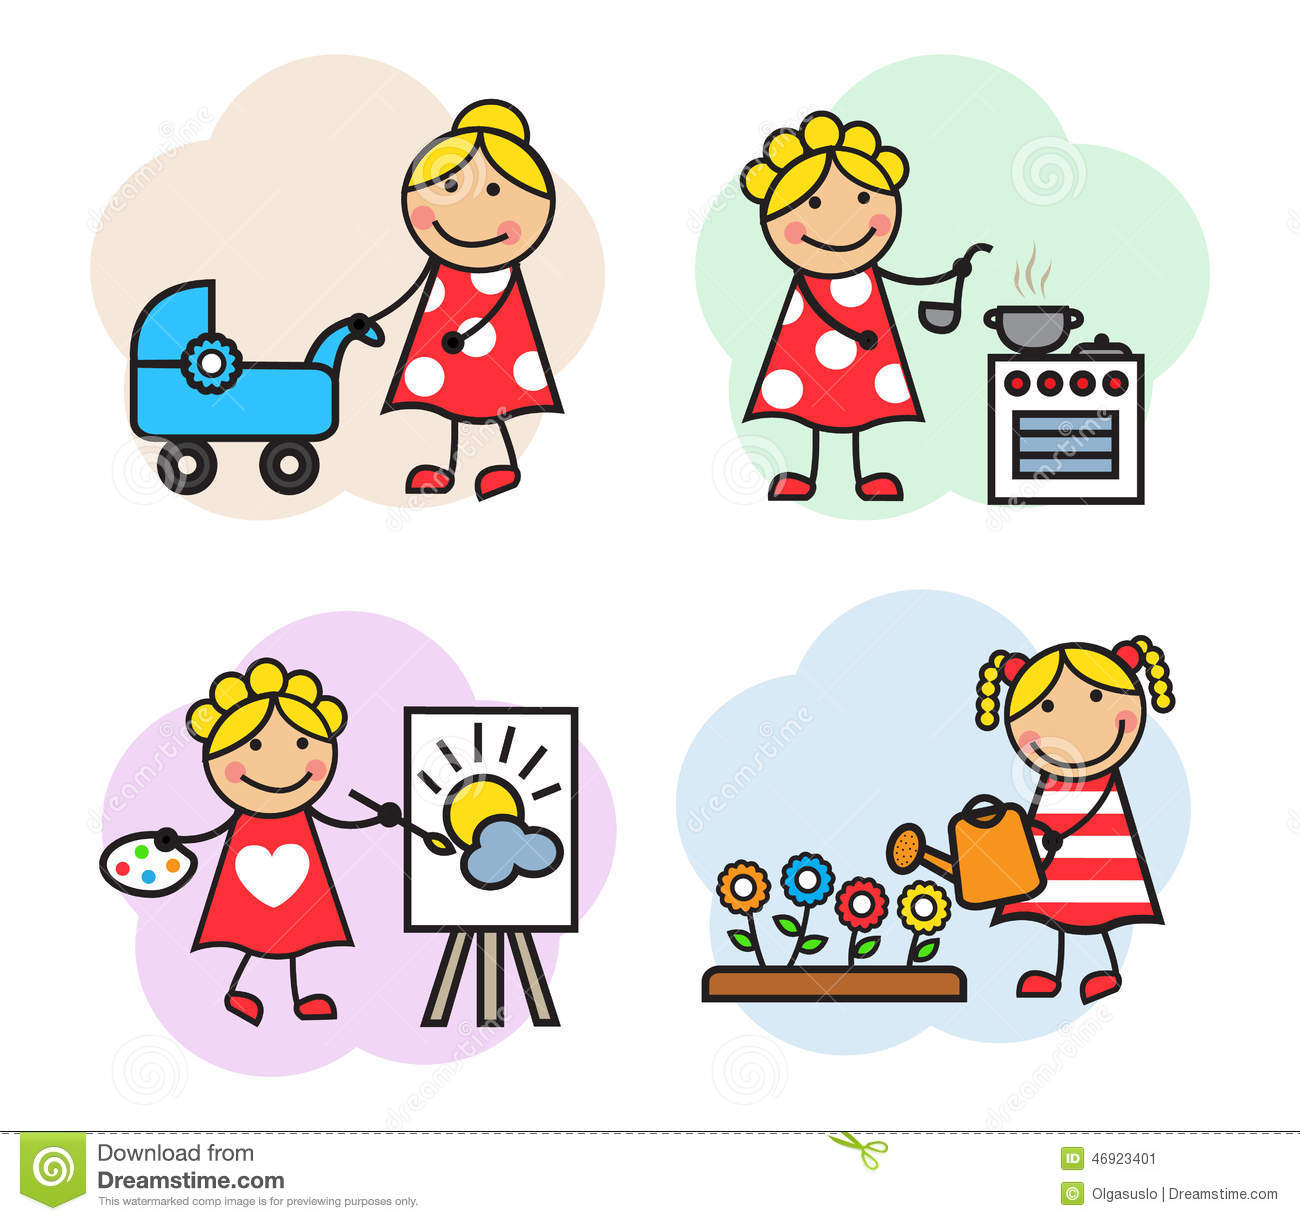 cartoon-woman-hobby-women-employed-different-paints-walking-stroller-watering-flowers-cooks-46923401.jpg